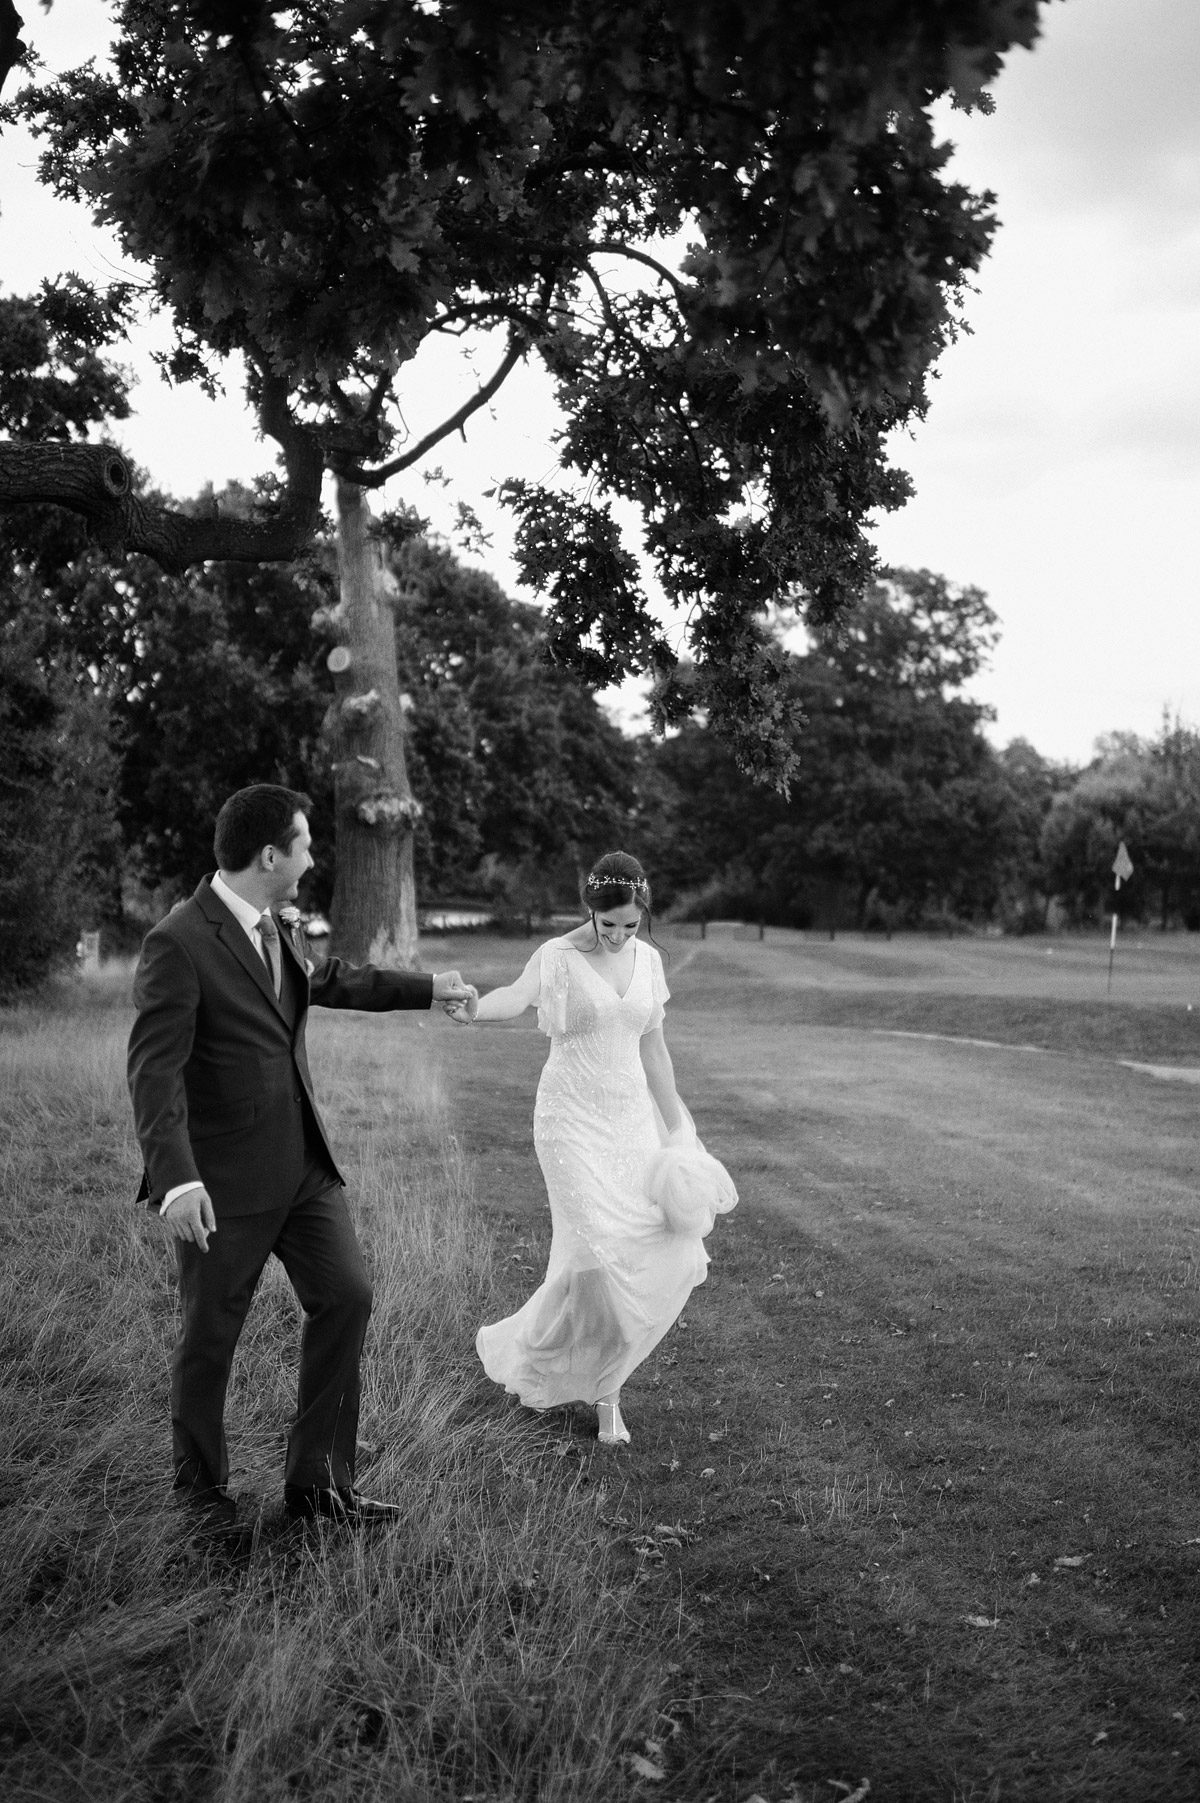 Wedding photographer London - couple portrait in wimbledon wedding